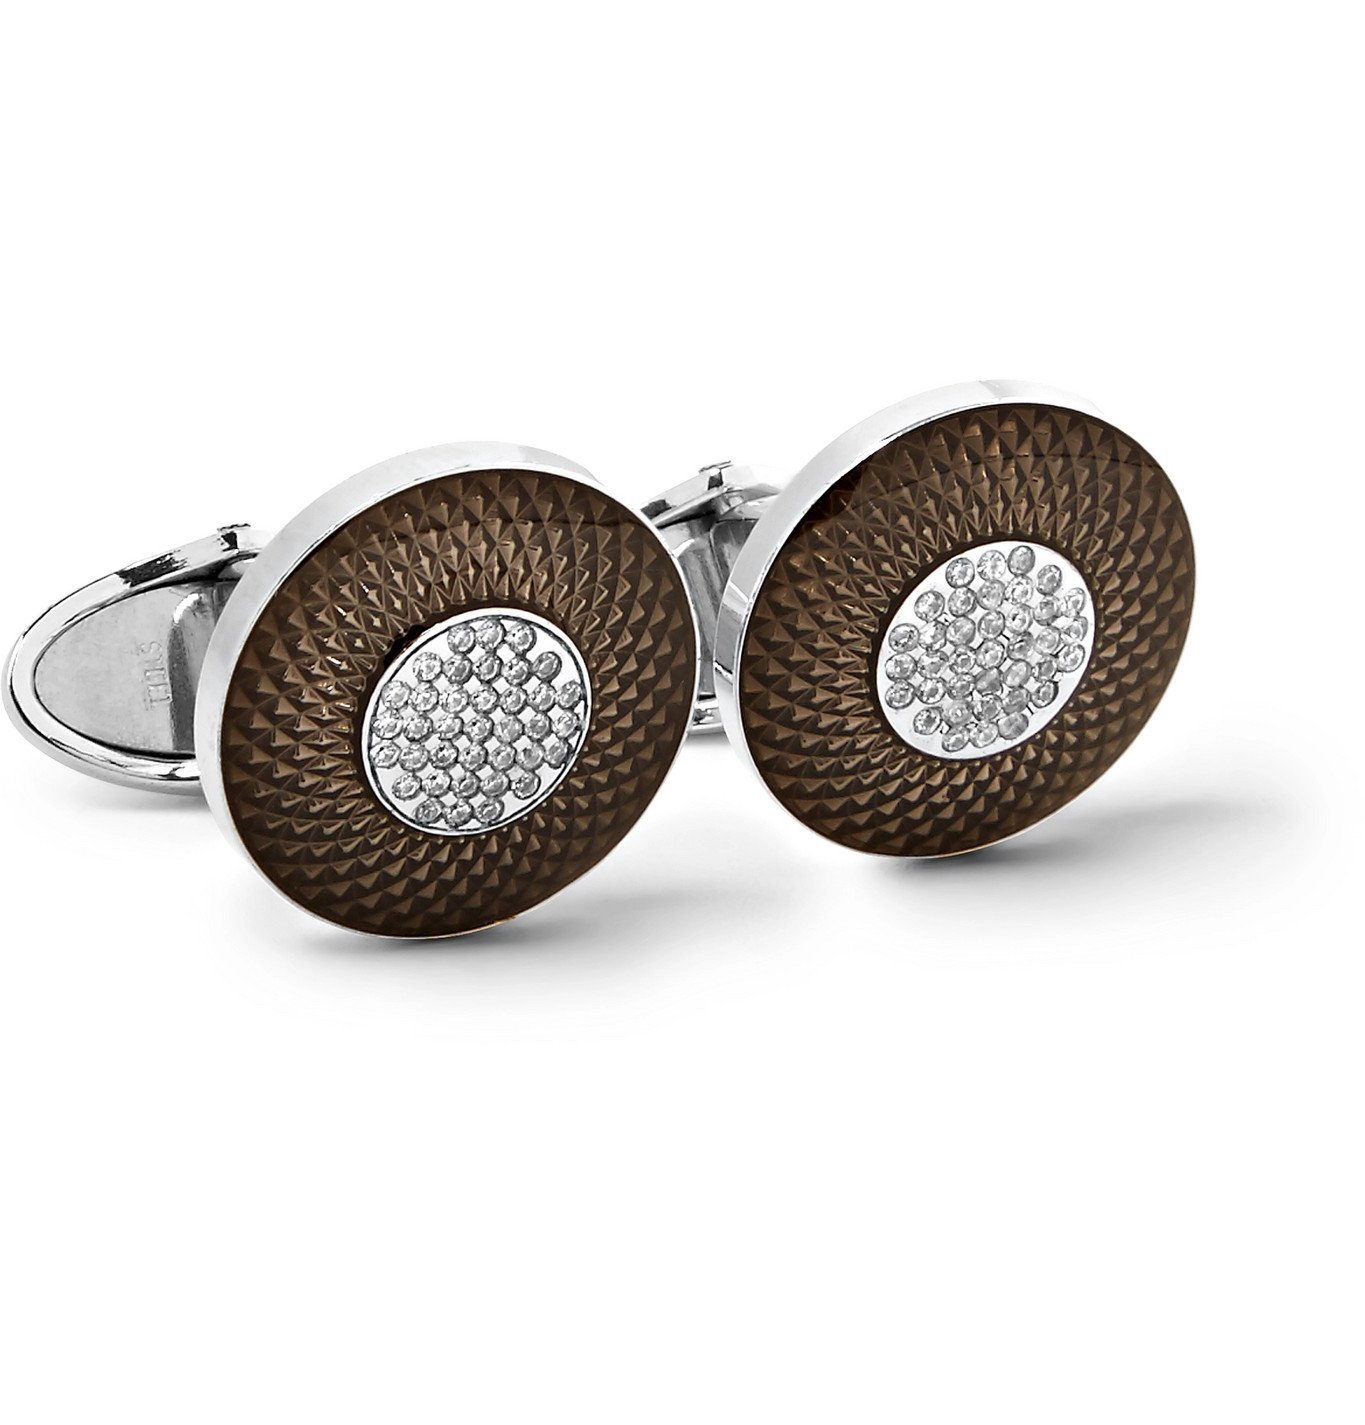 Dunhill - Sterling Silver, Enamel and Diamond Cufflinks - Silver